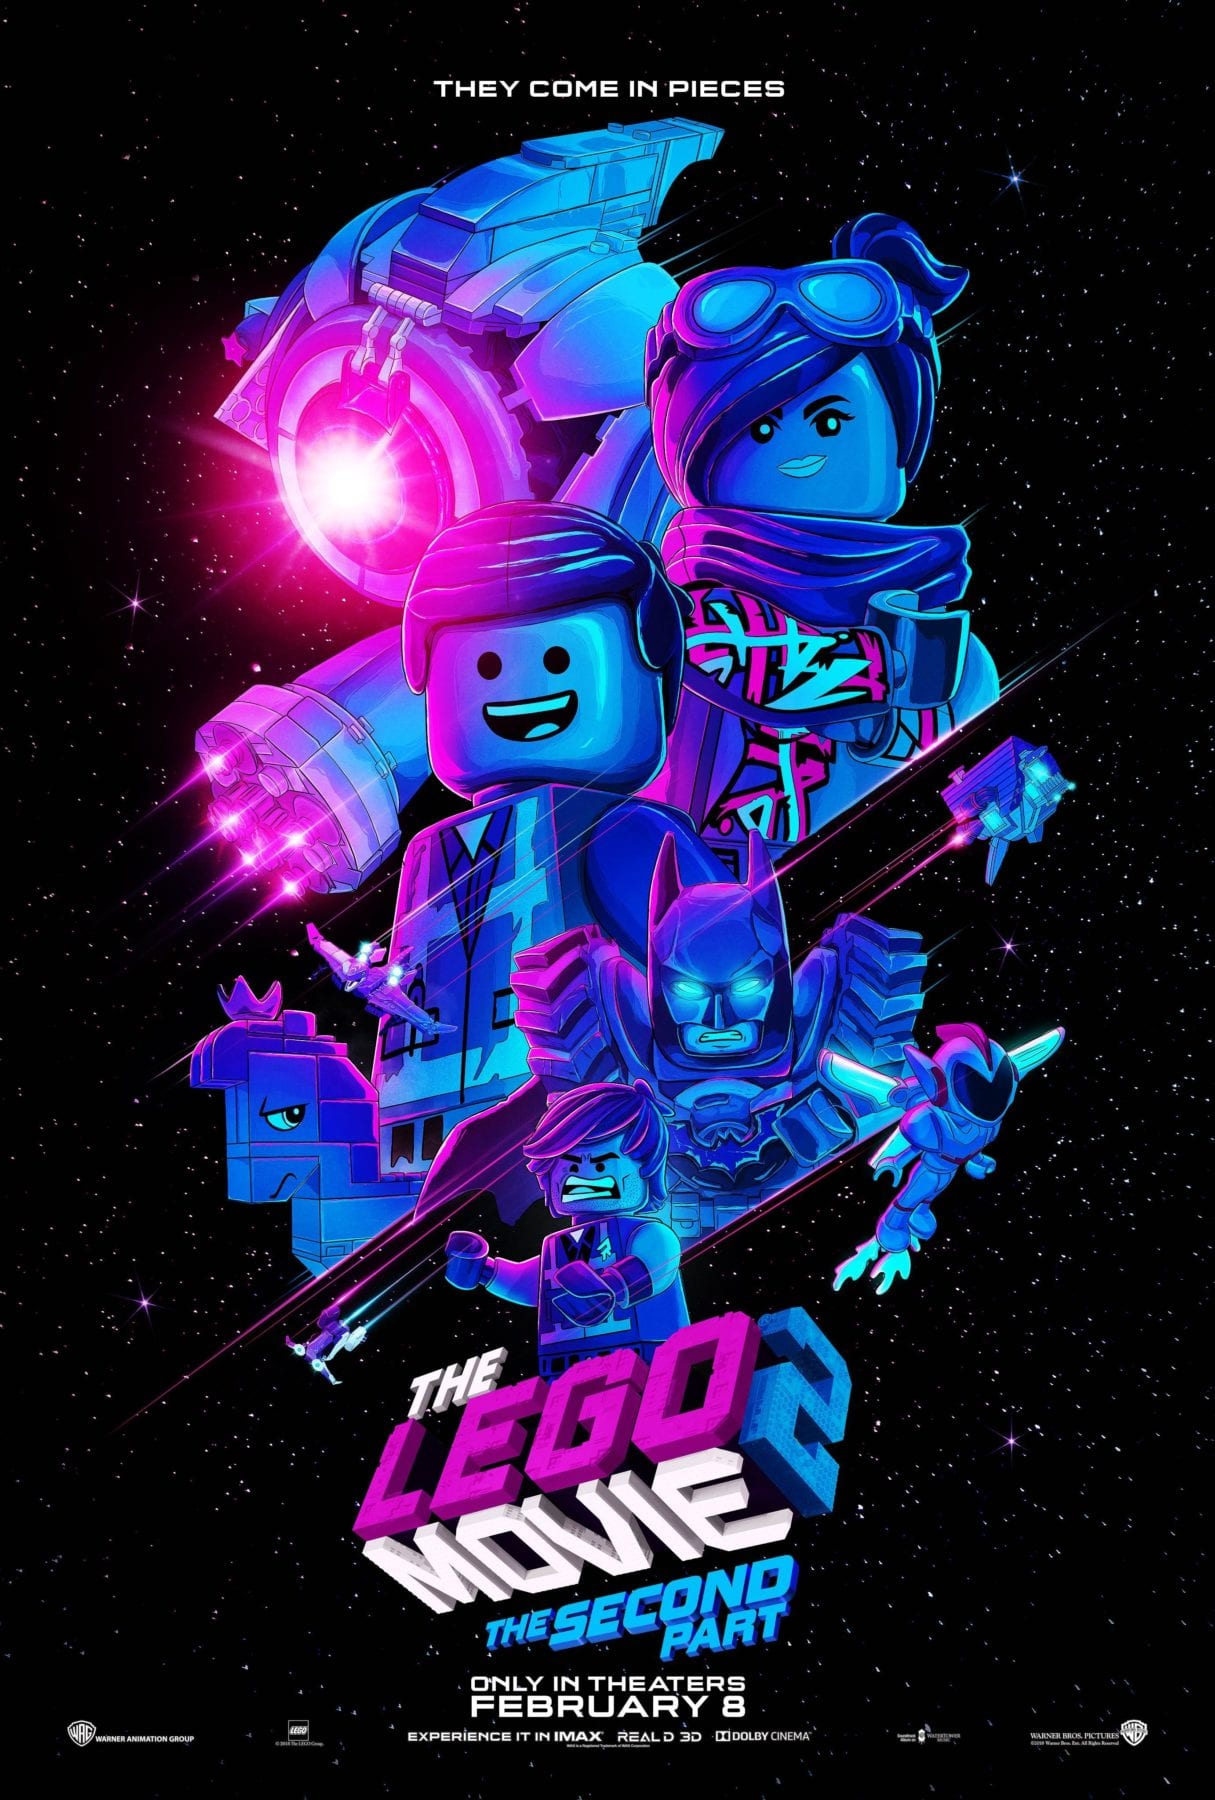 The LEGO Movie 2: The Second Part gets a new poster